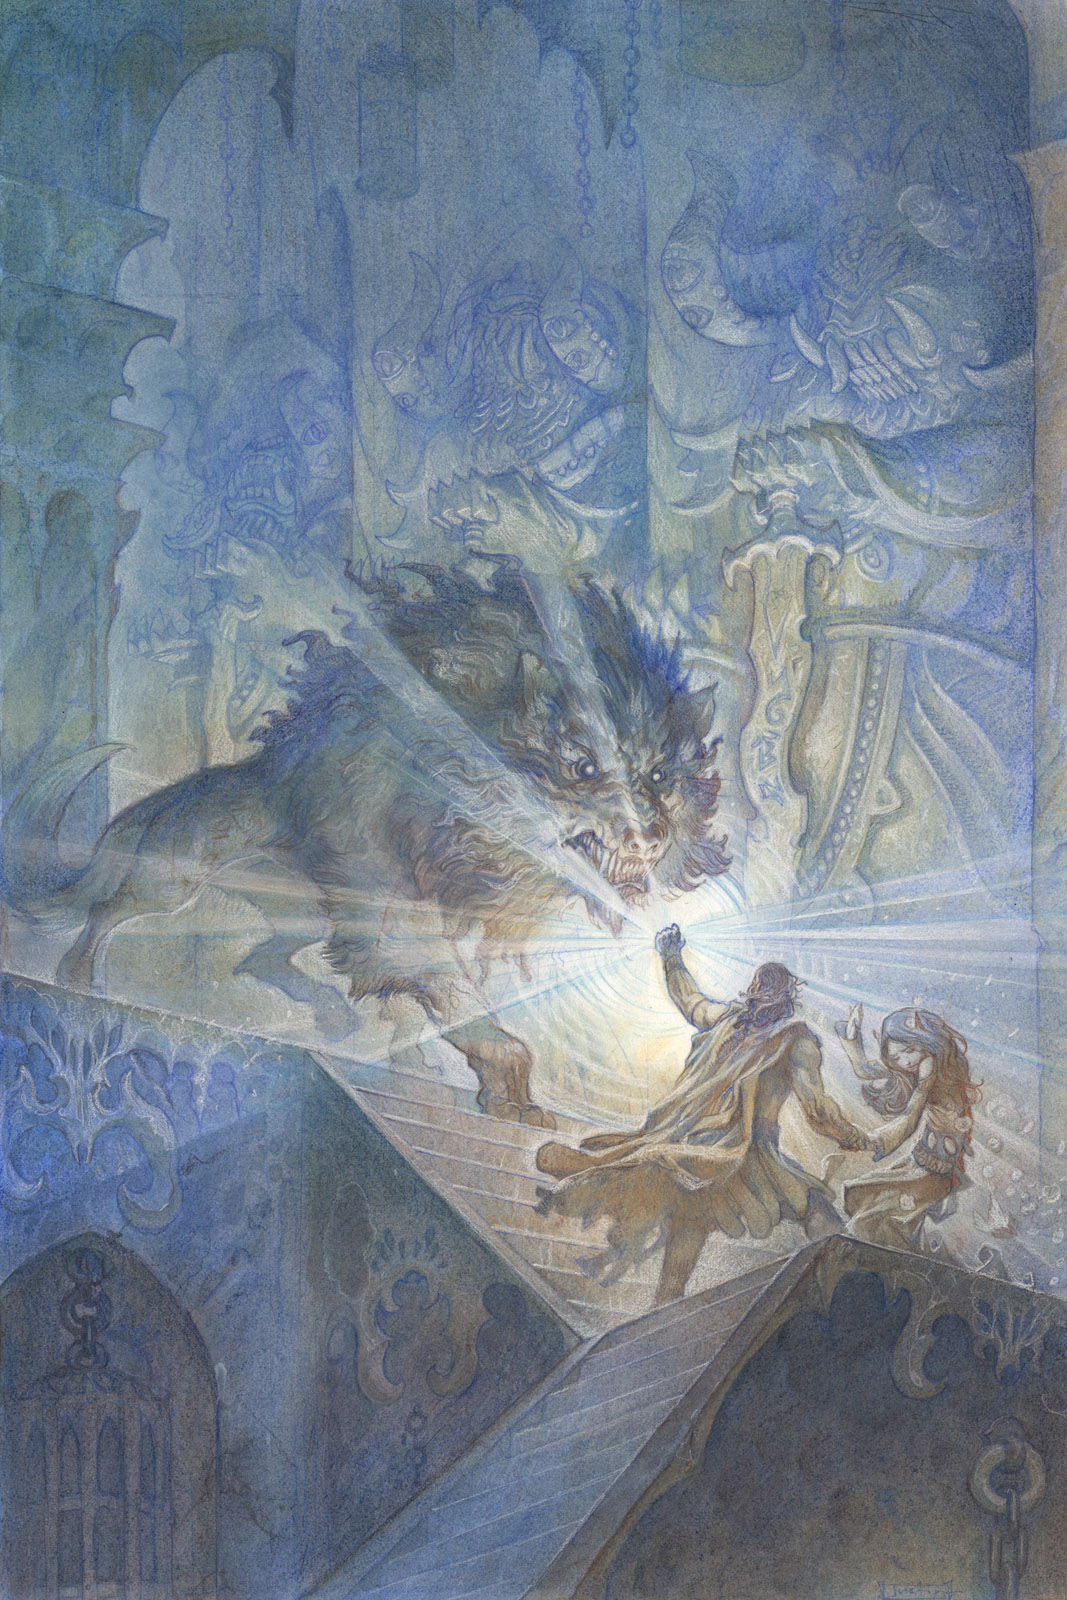 The Silmarillion: Luthien